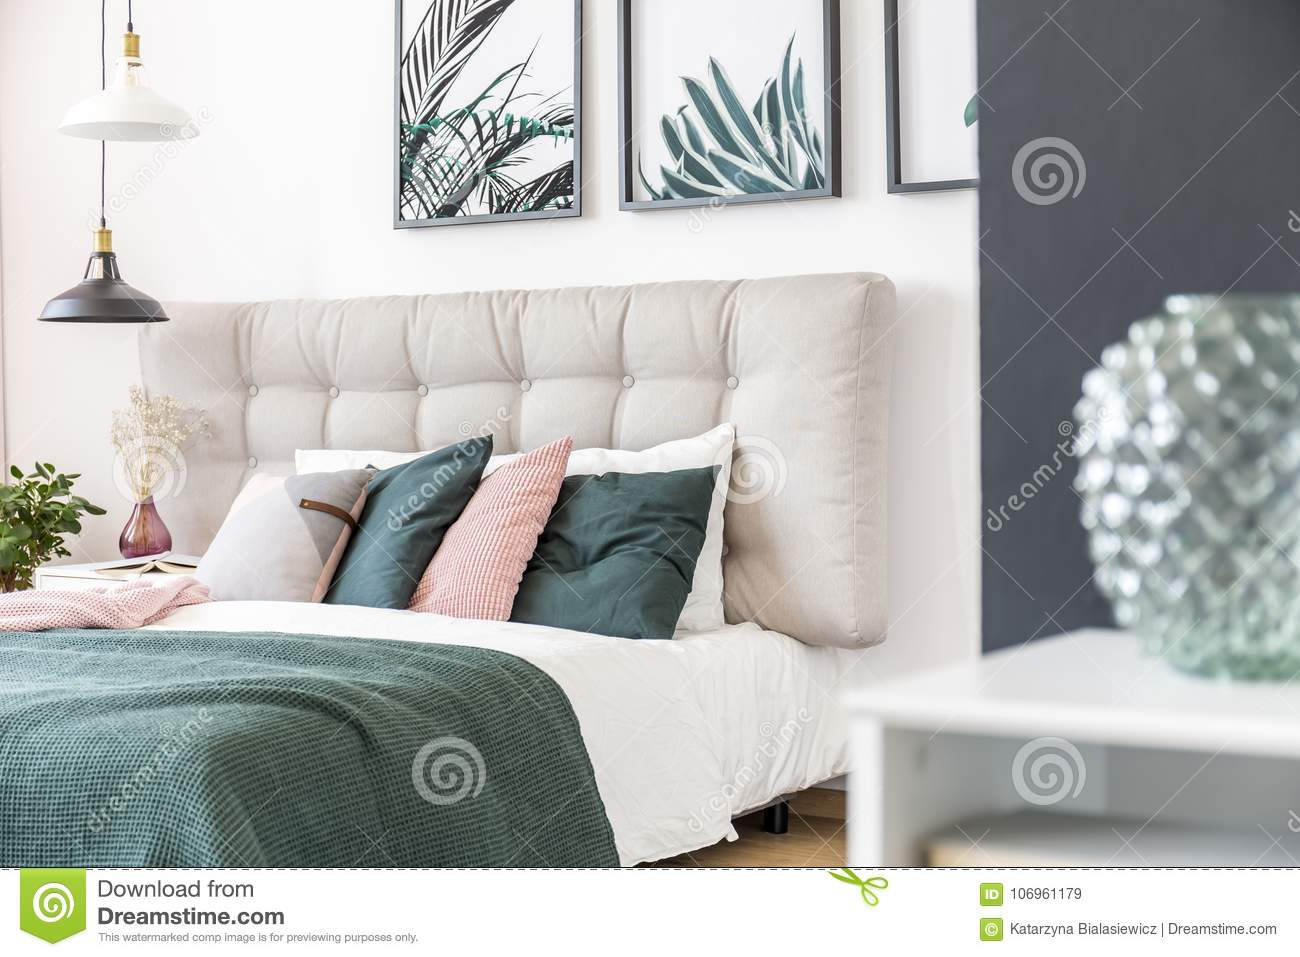 Modern Green Bedroom Interior Stock Image - Image of modern, decor ...